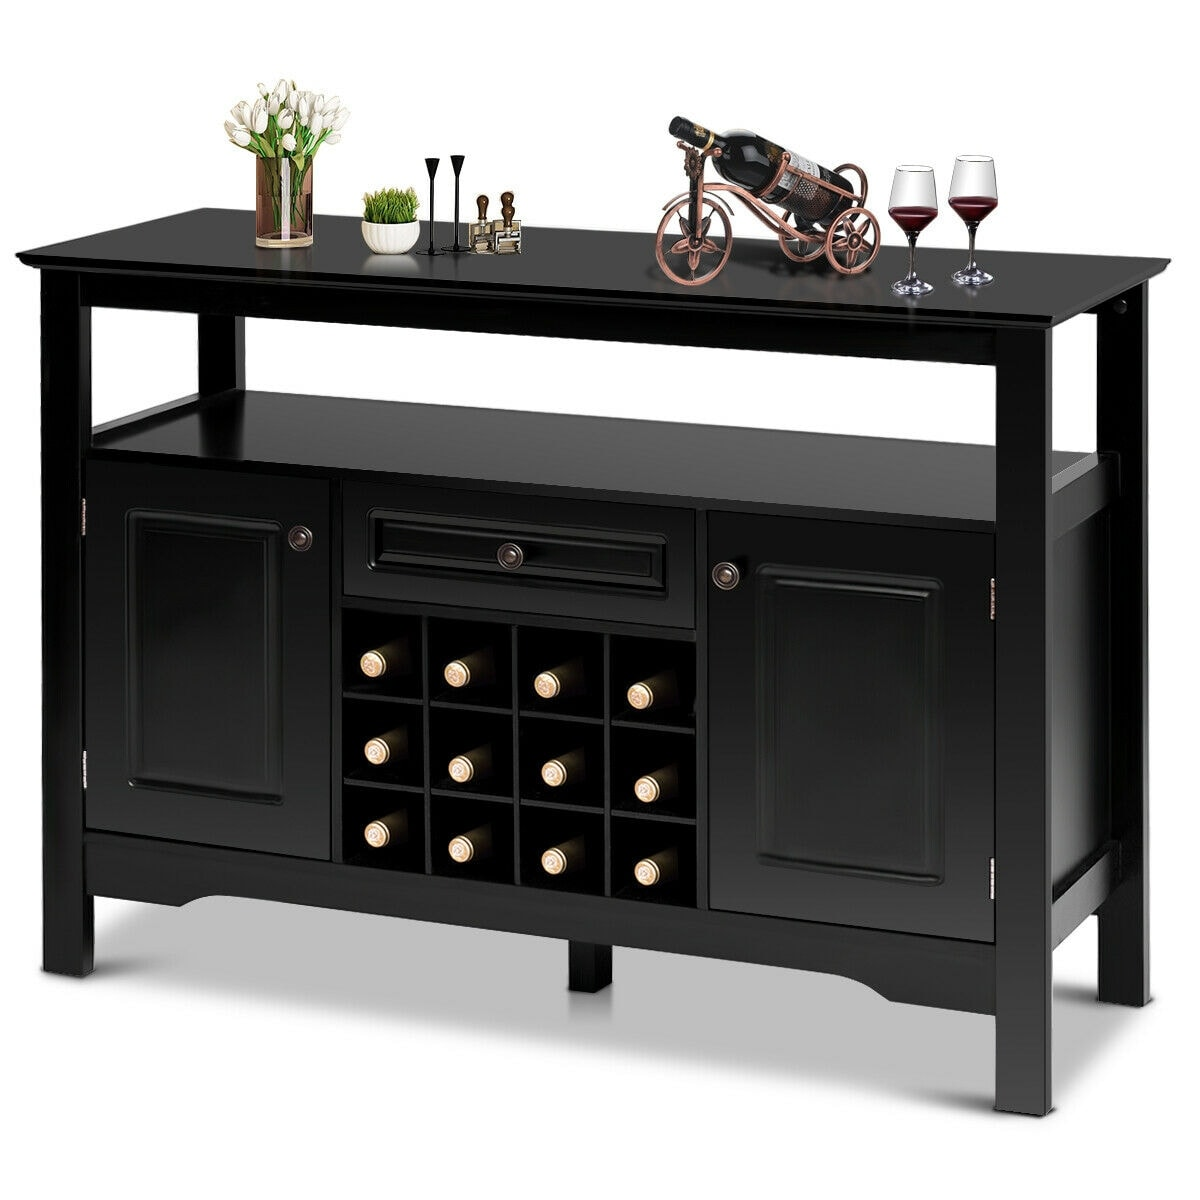 Cabinet Sideboard Table Wood Wine